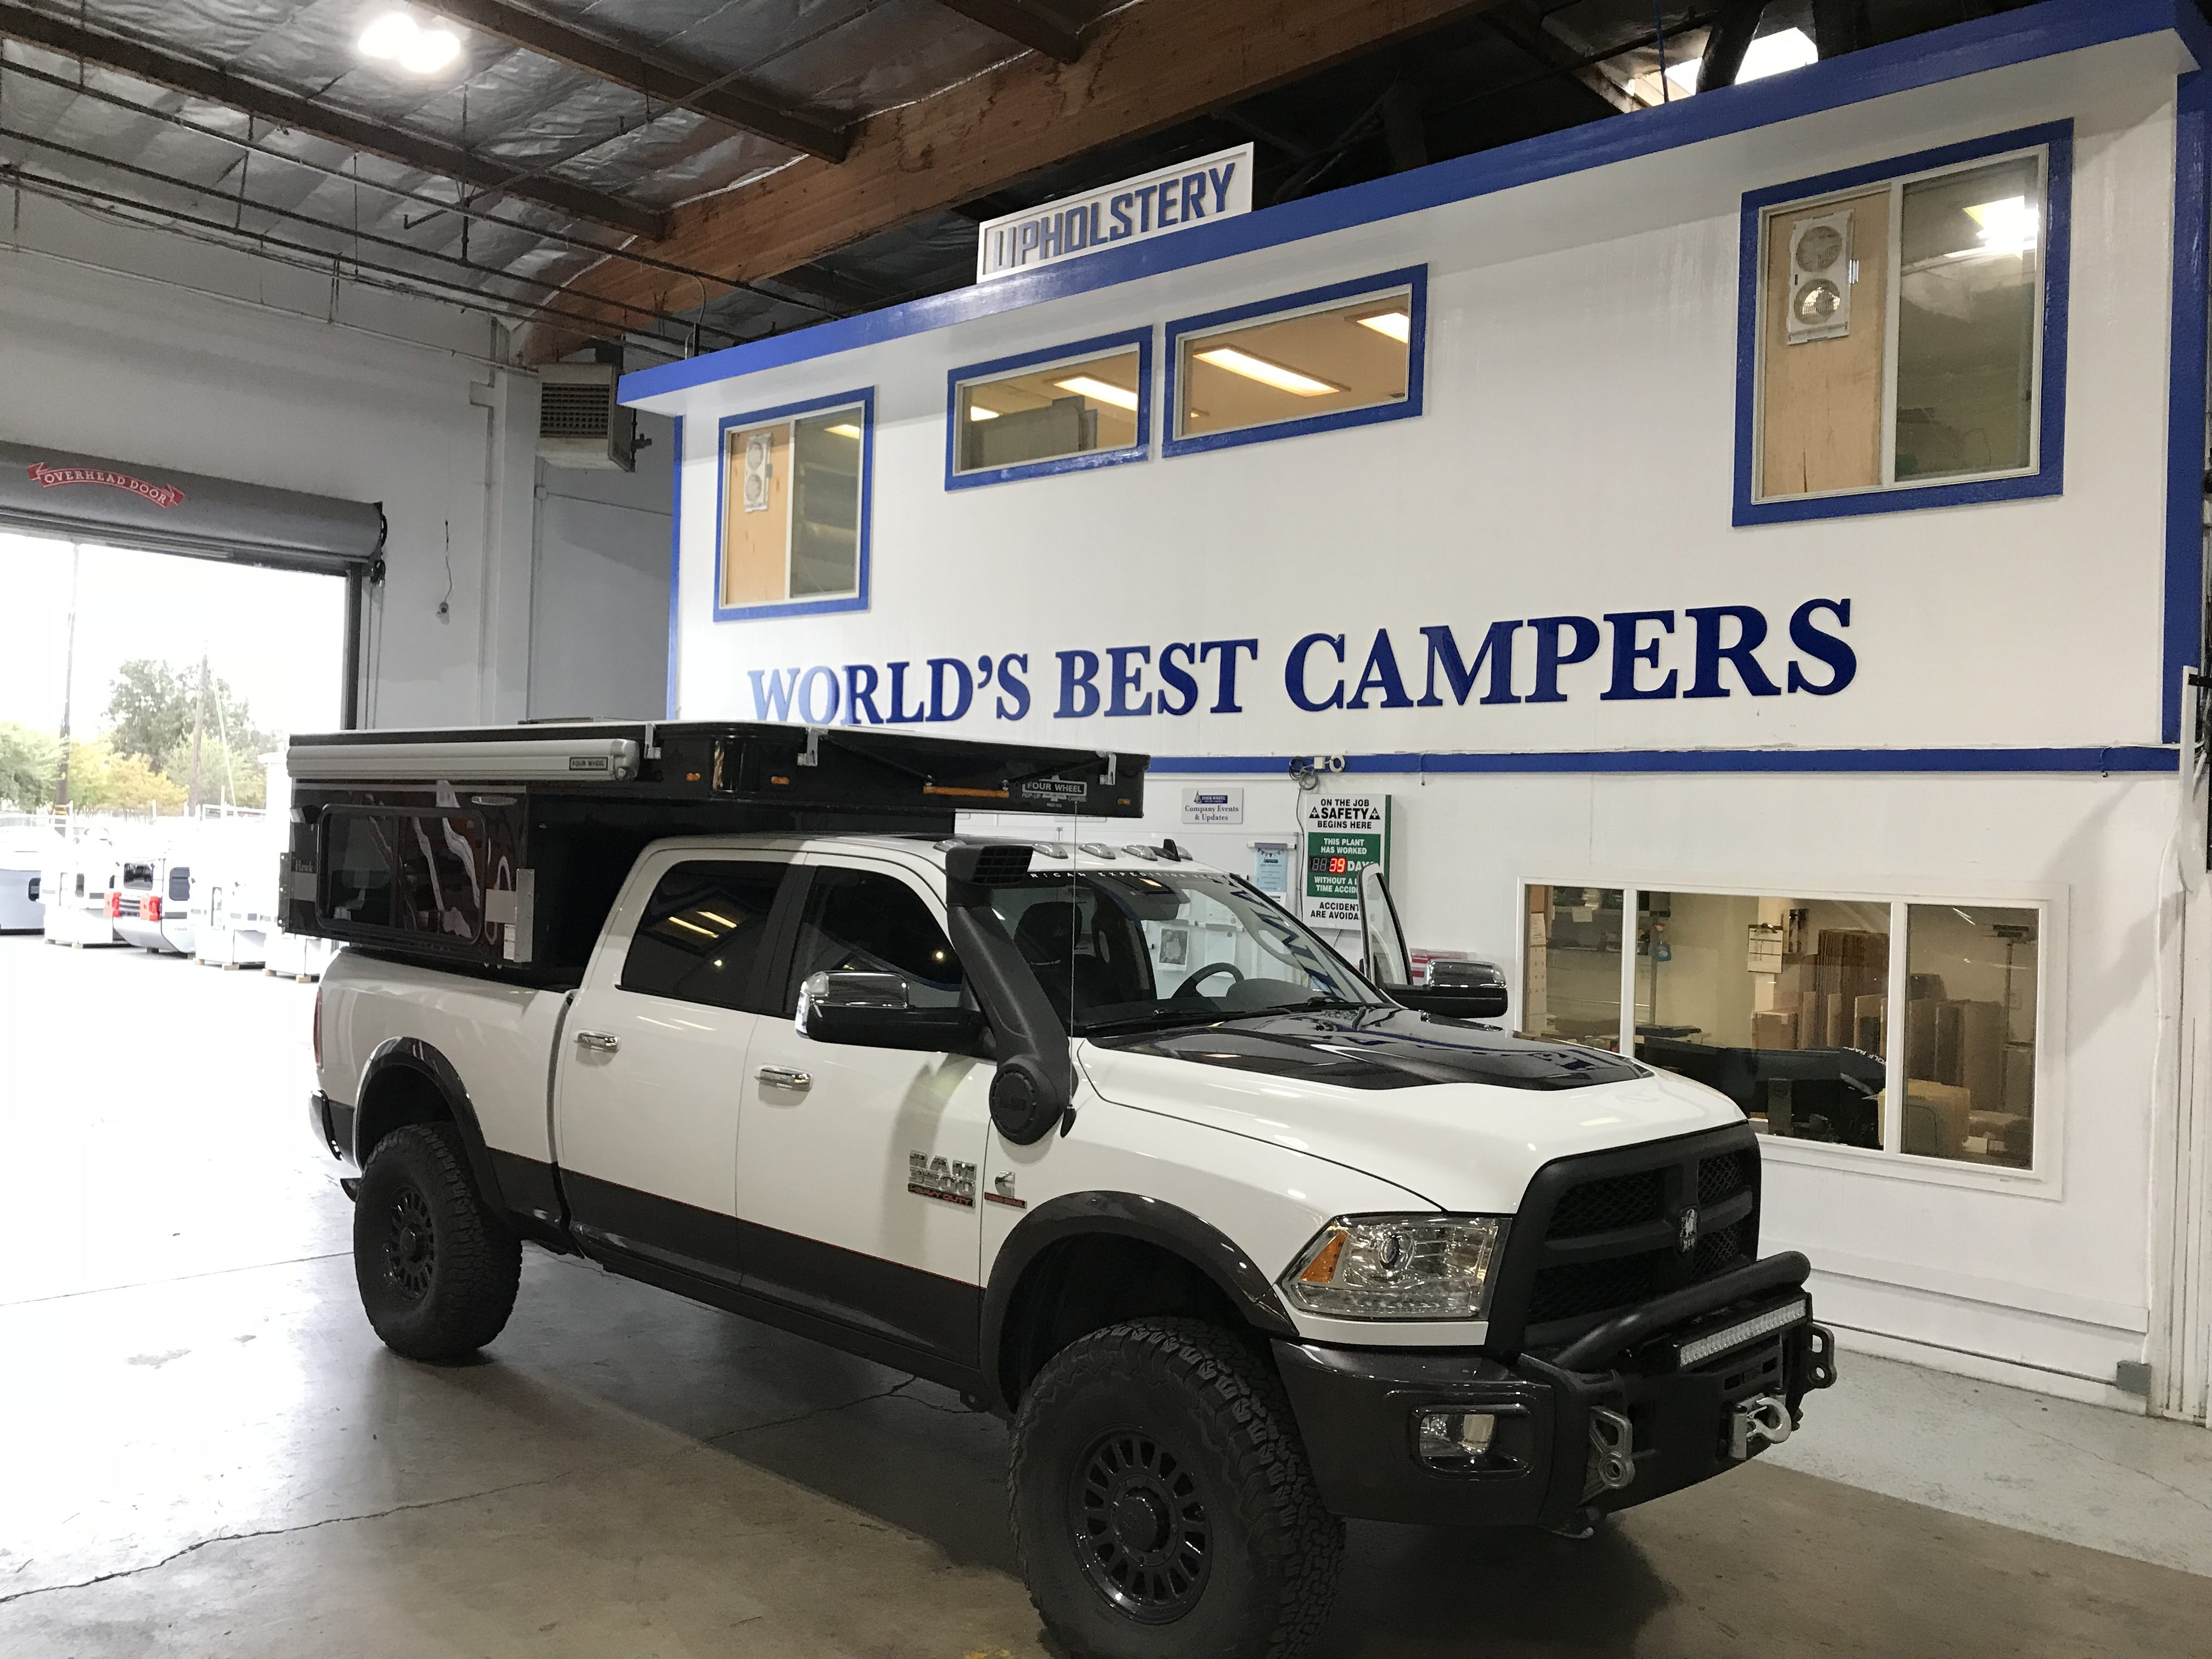 Four Wheel Campers - Worlds best campers